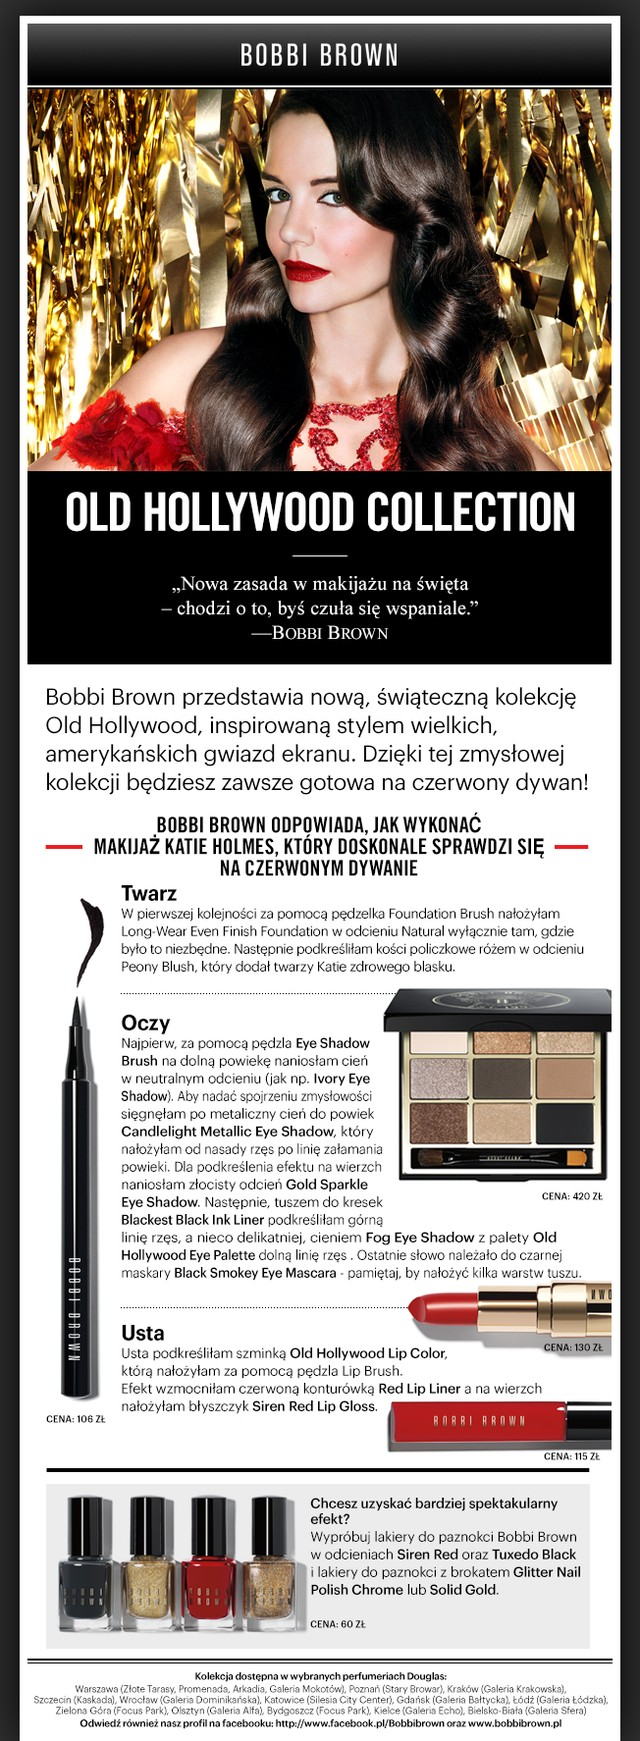 Bobbi Brown - kolekcja Old Hollywood (FOTO)